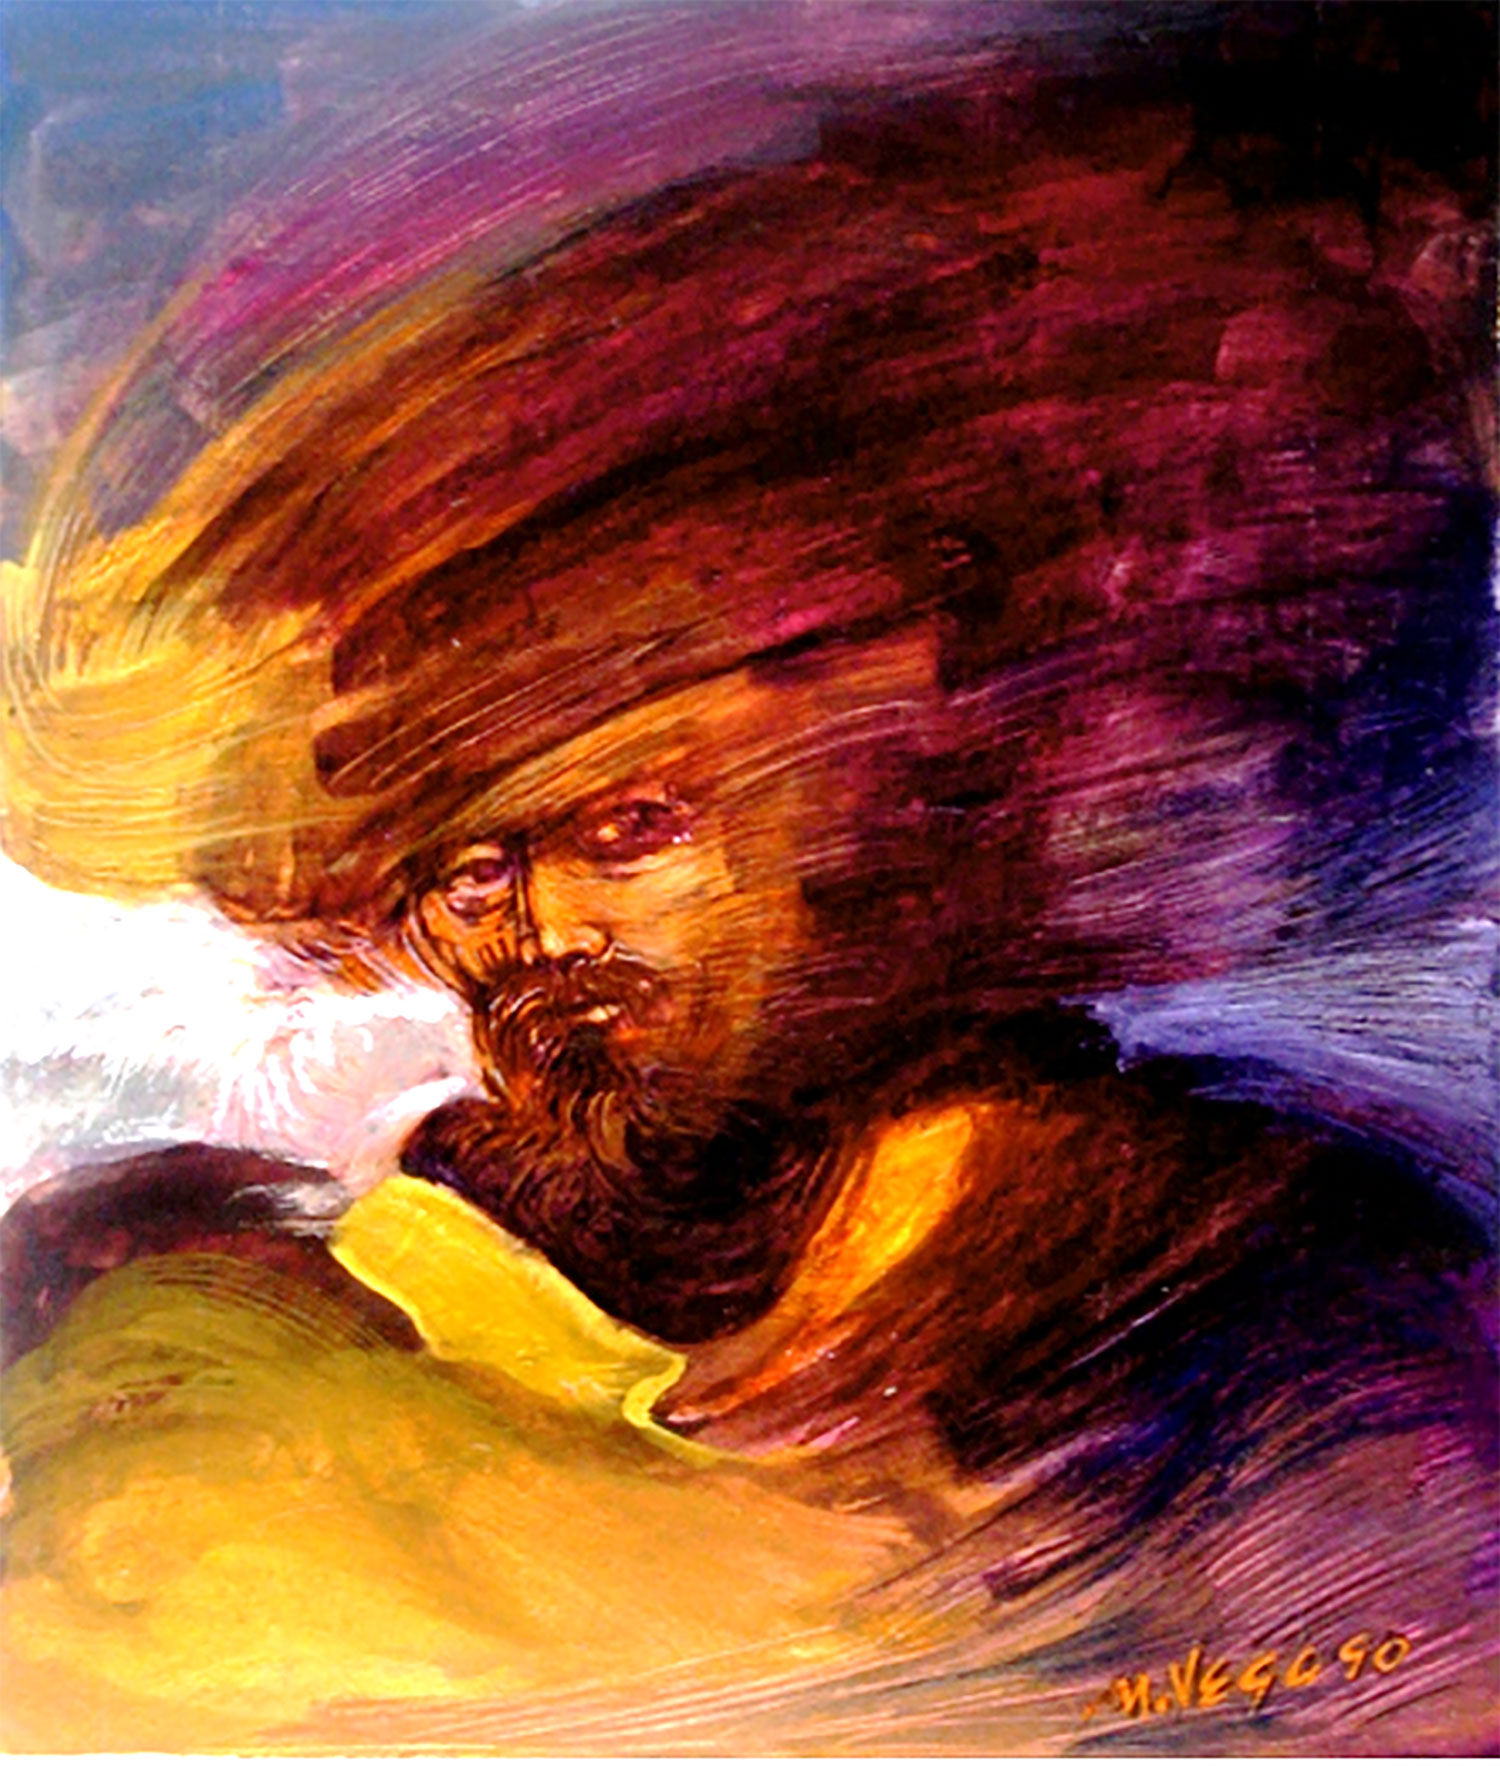 Privateer. Painting by Mauricio García Vega from the Yucatan Times.